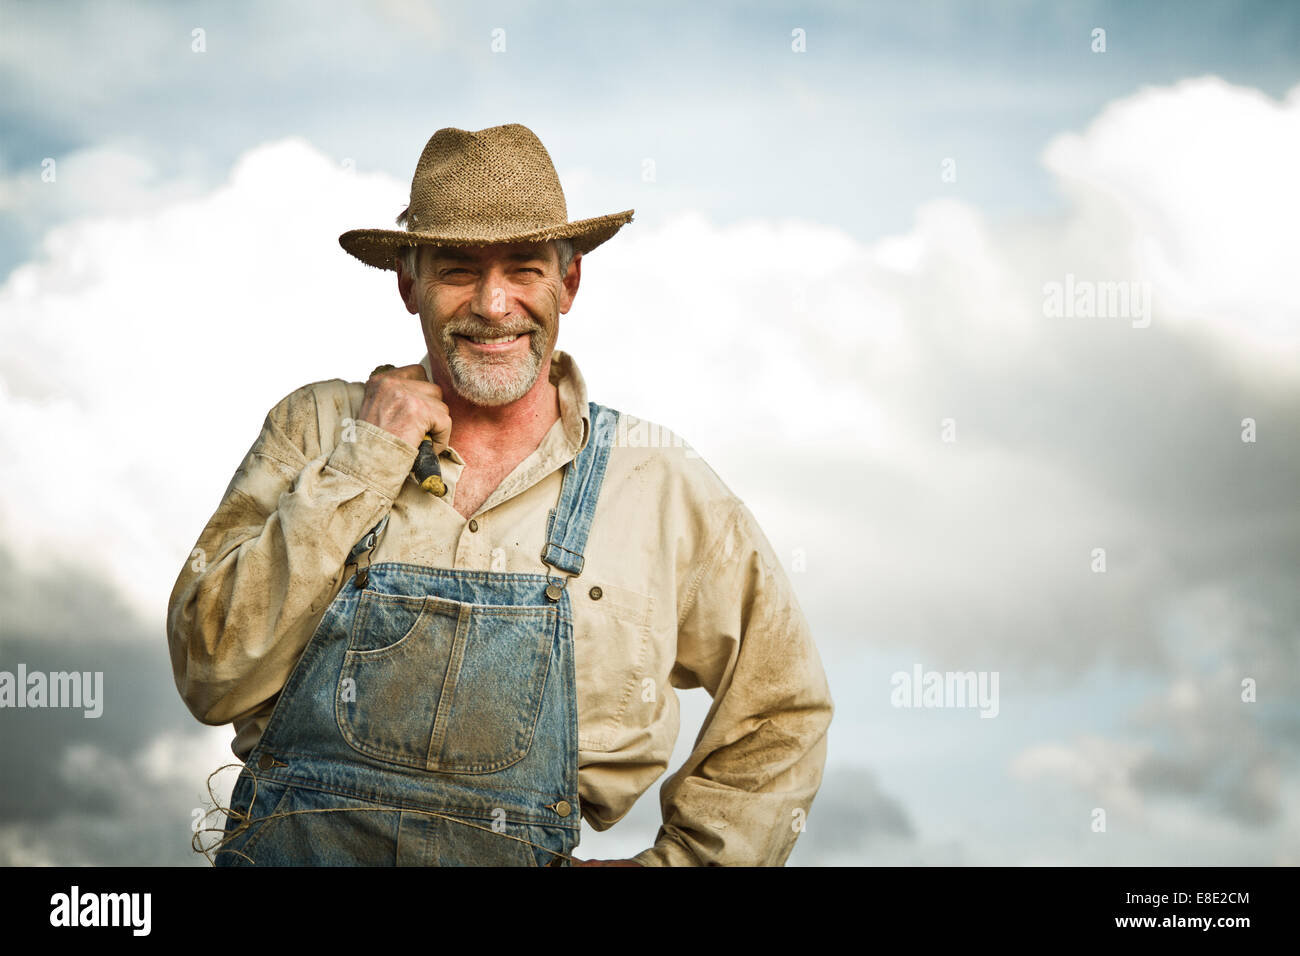 1930s farmer smiling at the camera - Stock Image